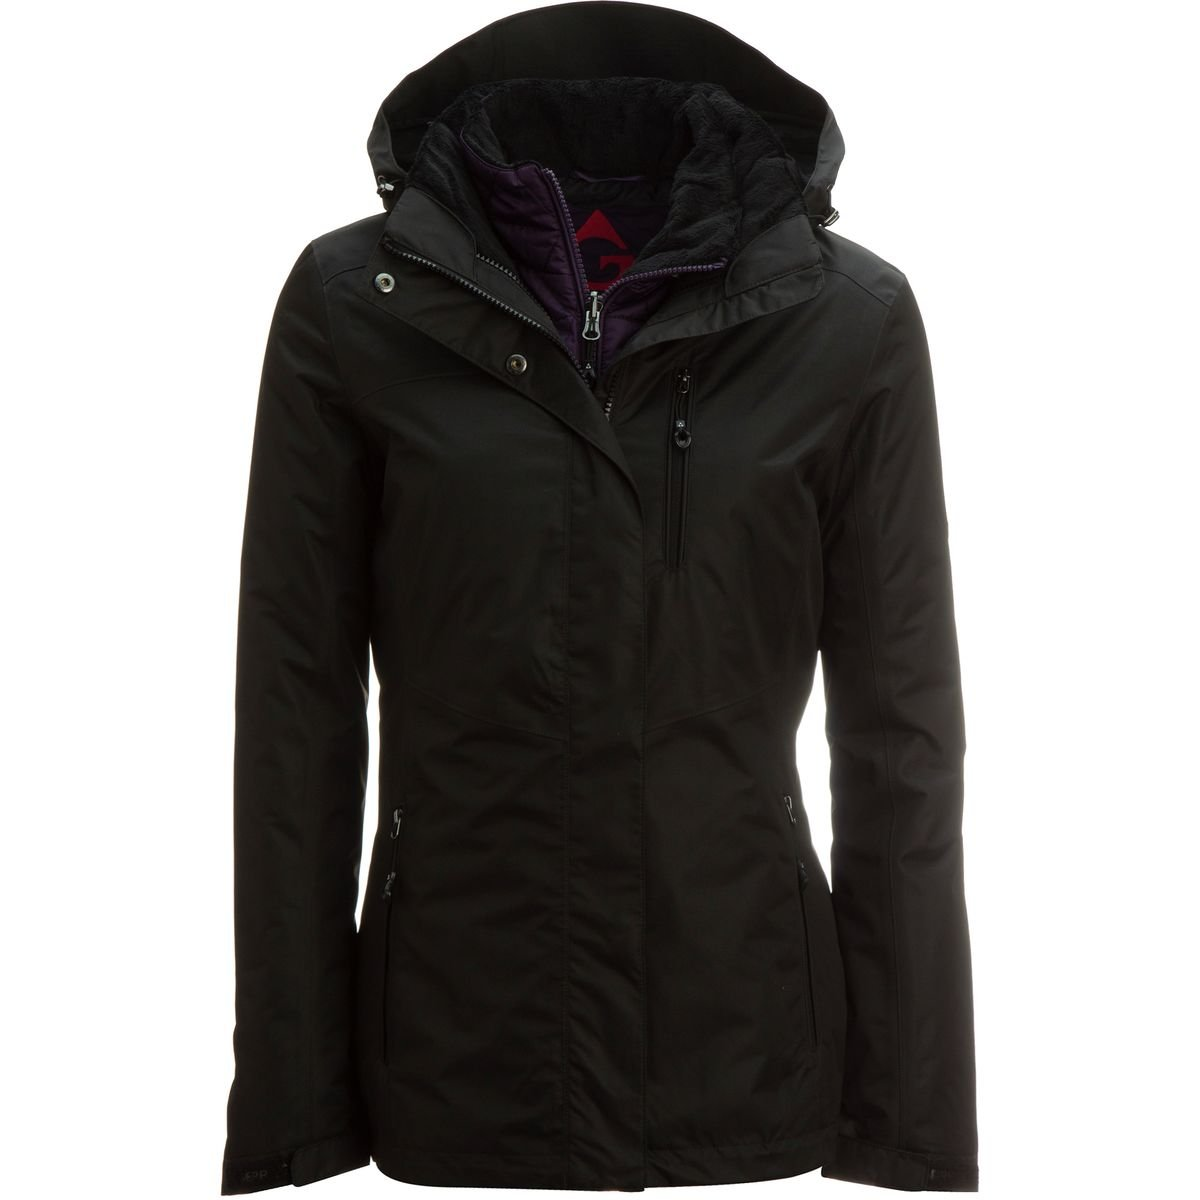 4ffddd49c Amazon.com: Gerry 3-in-1 Systems Jacket - Women's Black, L: Sports &  Outdoors